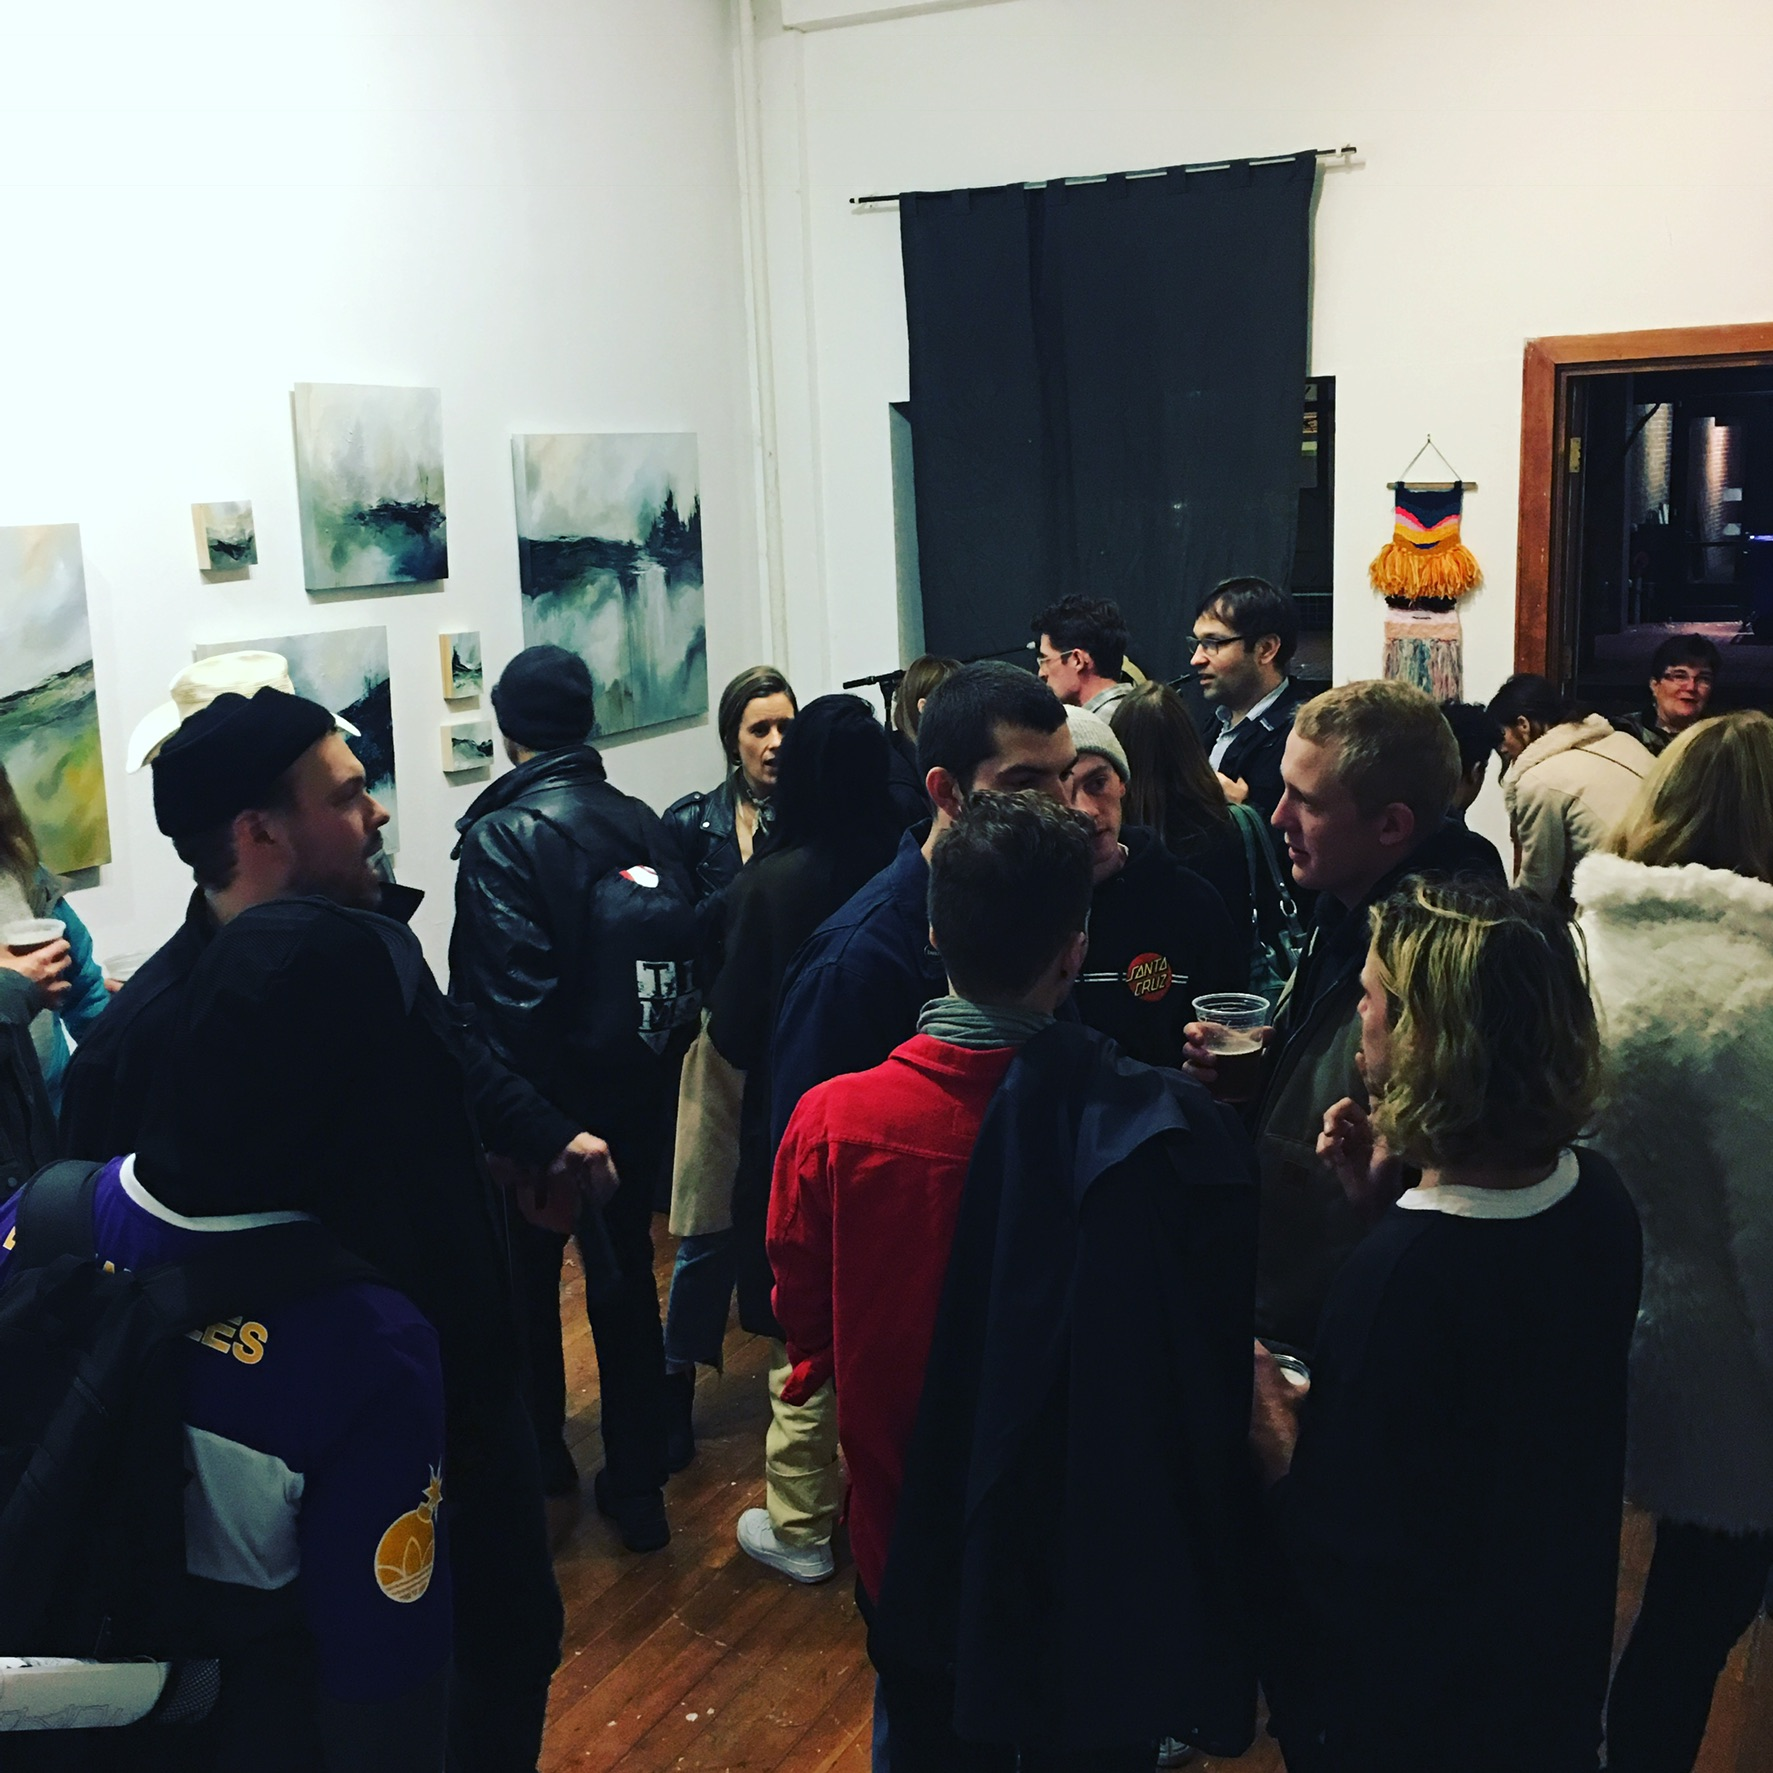 First Thursday crowd at the opening reception on November 3, 2016.  A great mix of old friends & new, family, and visitors who came back after enjoying the opening reception last month.  Thanks for your support! +